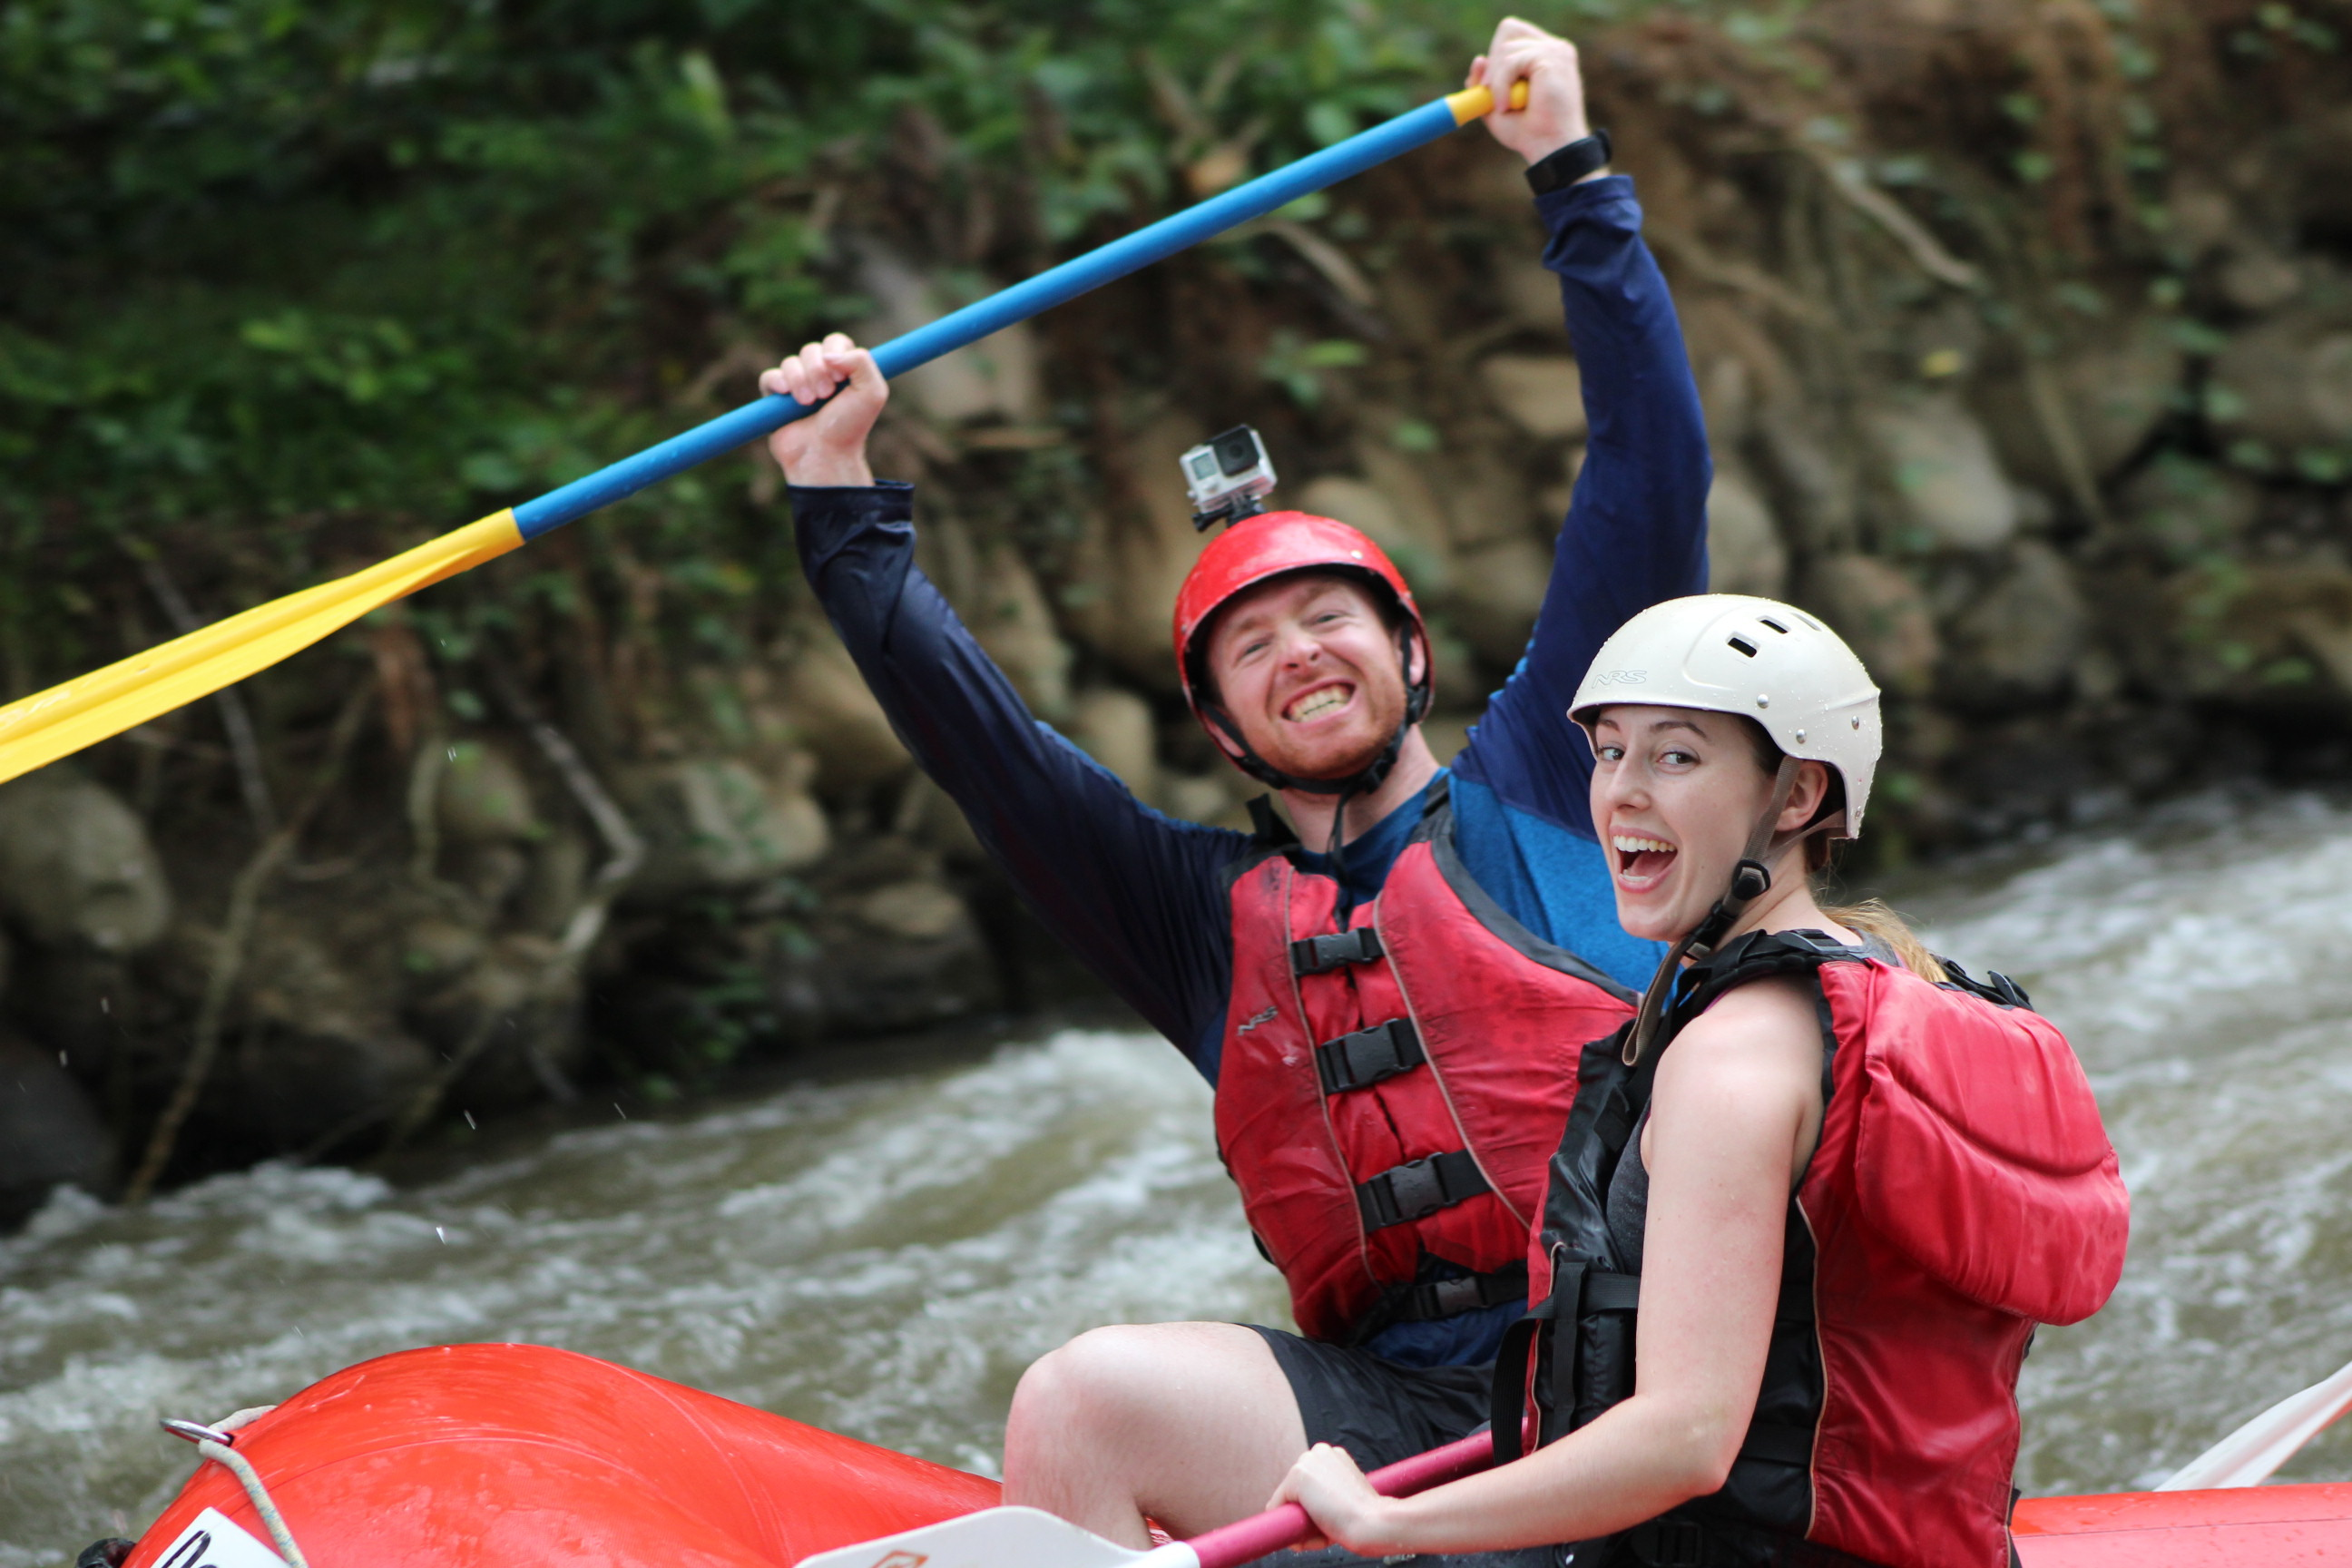 Costa Rica Whitewater Rafting Class 2-3 on the Balsa River is the perfect tour for nature lovers, outdoor enthusiasts